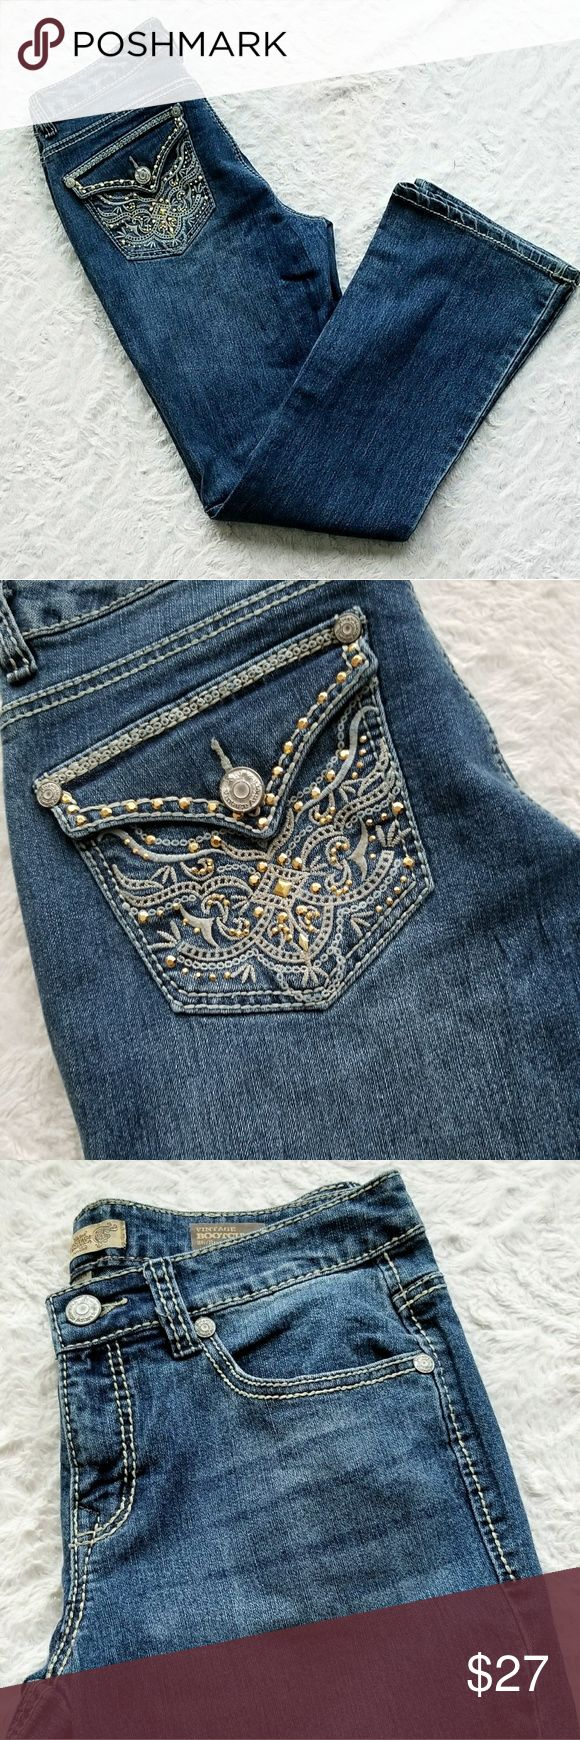 """NINE WEST VINTAGE BOOTCUT JEANS 8/29 NINE WEST  VINTAGE BOOTCUT JEANS  Size 8/29 Embellished Pockets 5 pocket  Belt loops  Pocket Flaps  Light stitching  Inseam 31""""   Leg opening 9"""" Waist flat 15""""  73% cotton 25% polyester 2% spandex  Excellent use condition Nine West Jeans Boot Cut"""